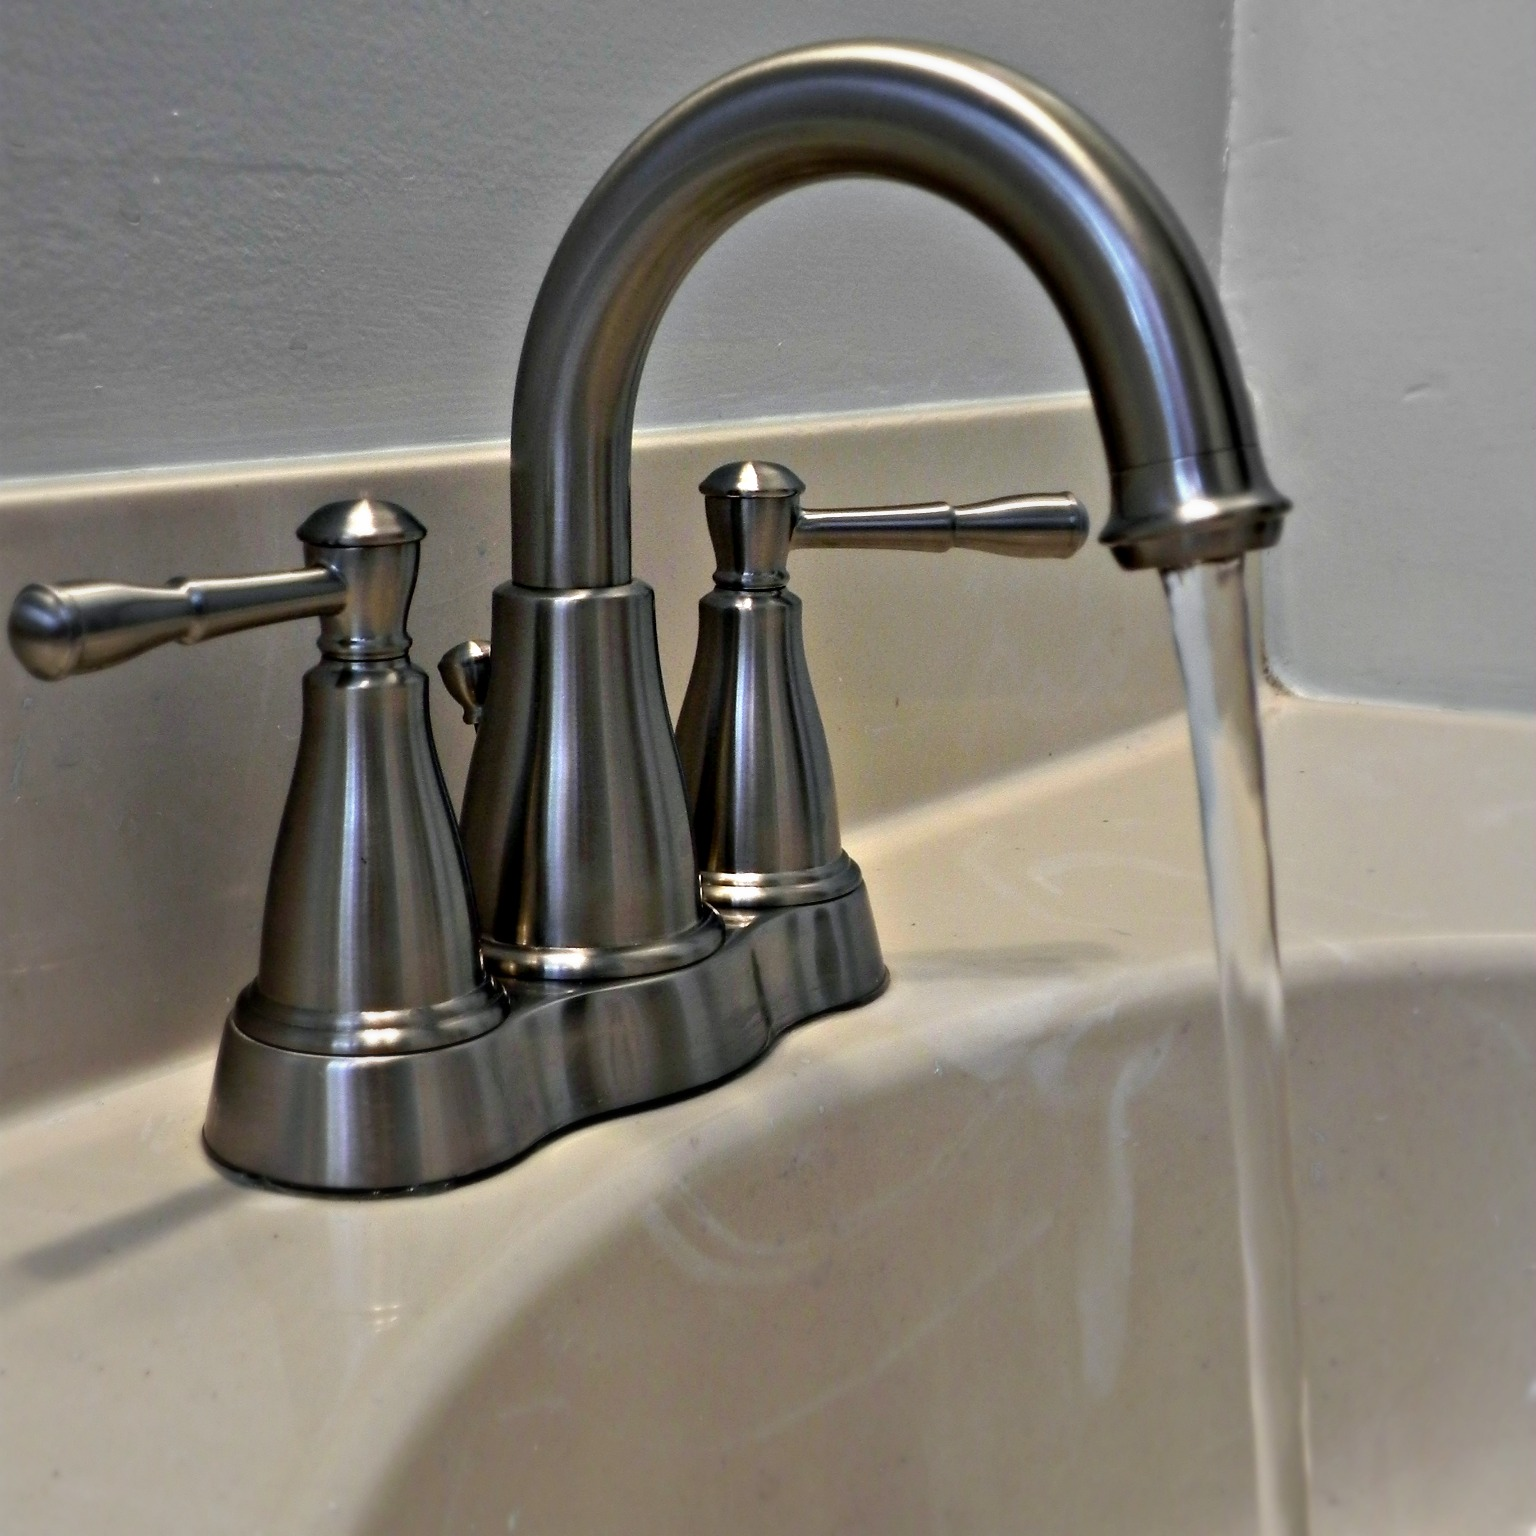 danze faucet in the mad house i was excited for a chance to replace